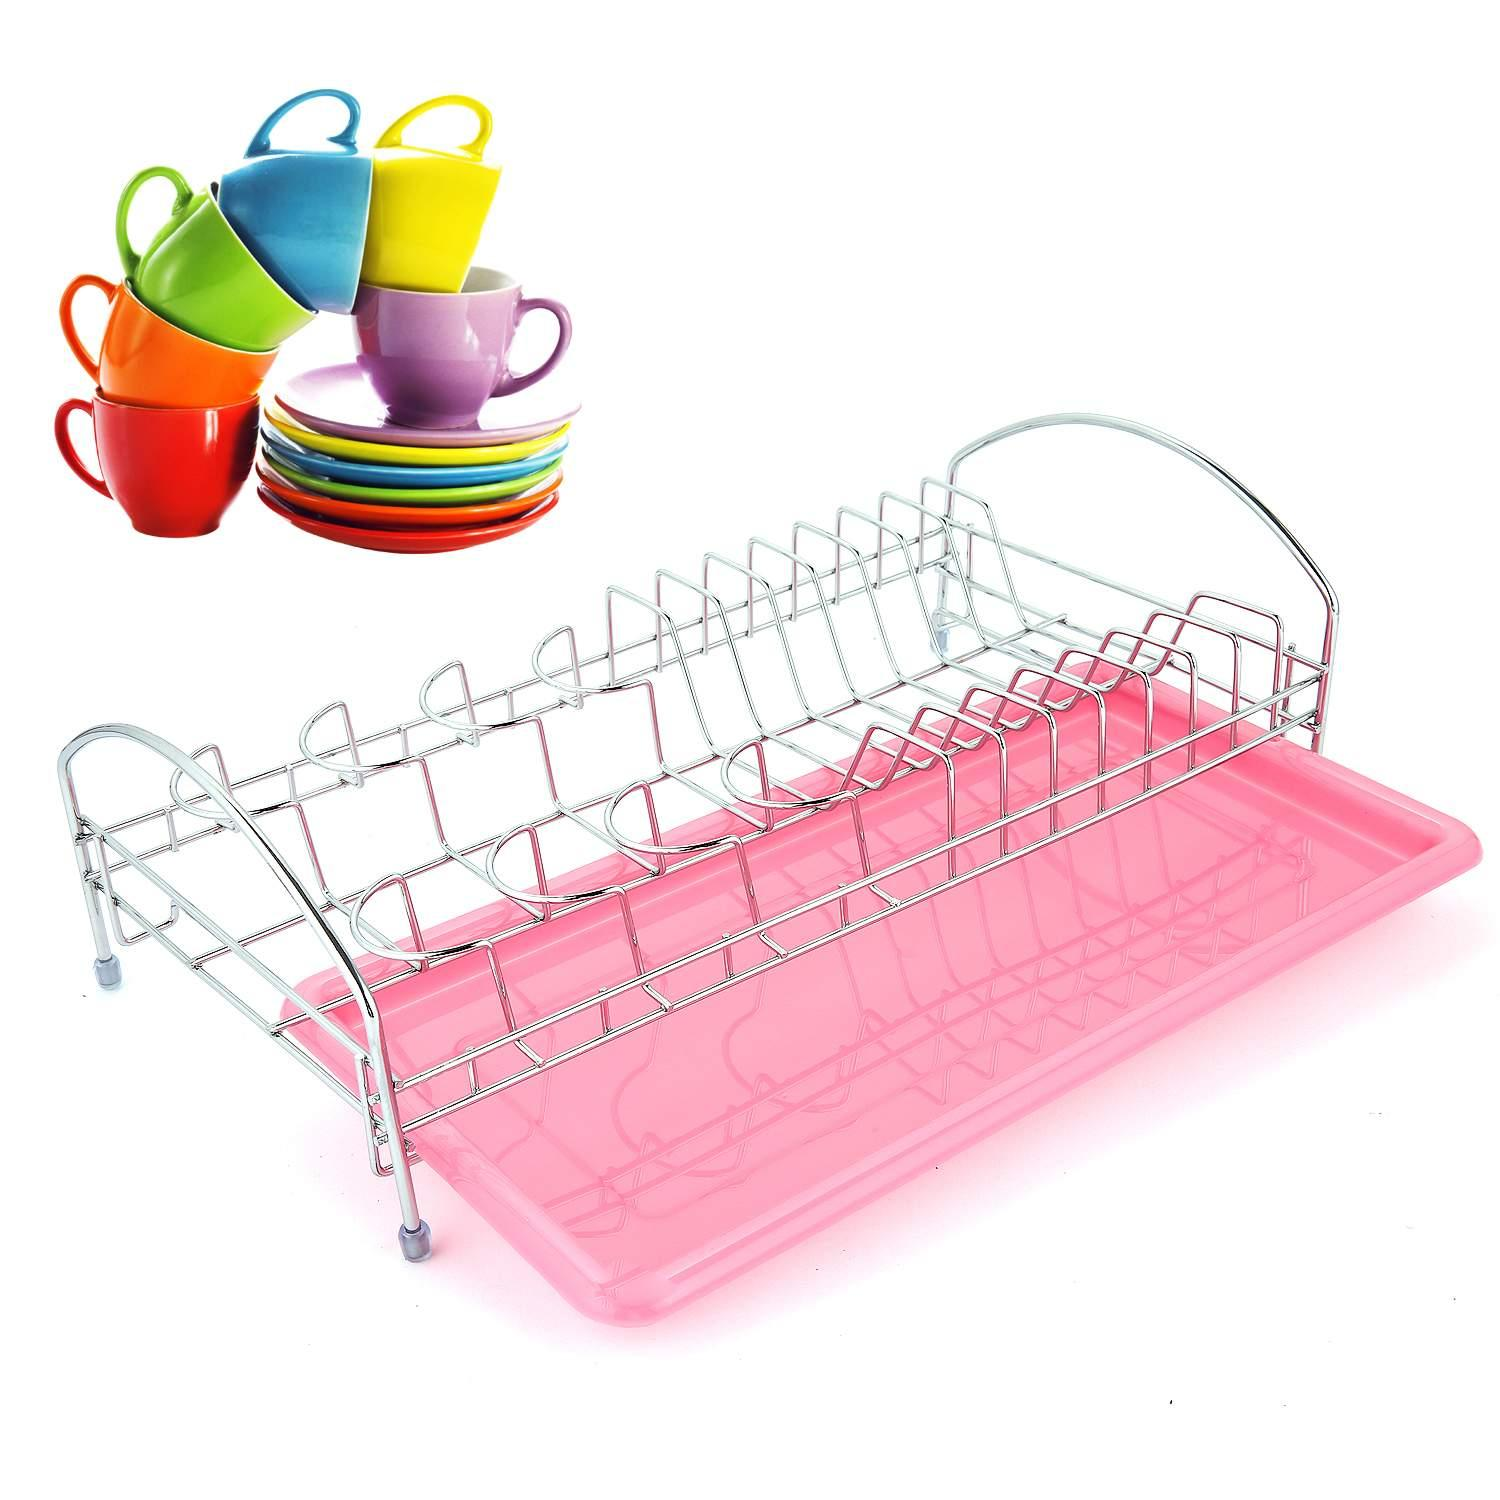 Kitchen Kitchenware Tools Stainless Steel Dish Drying Rack HITC